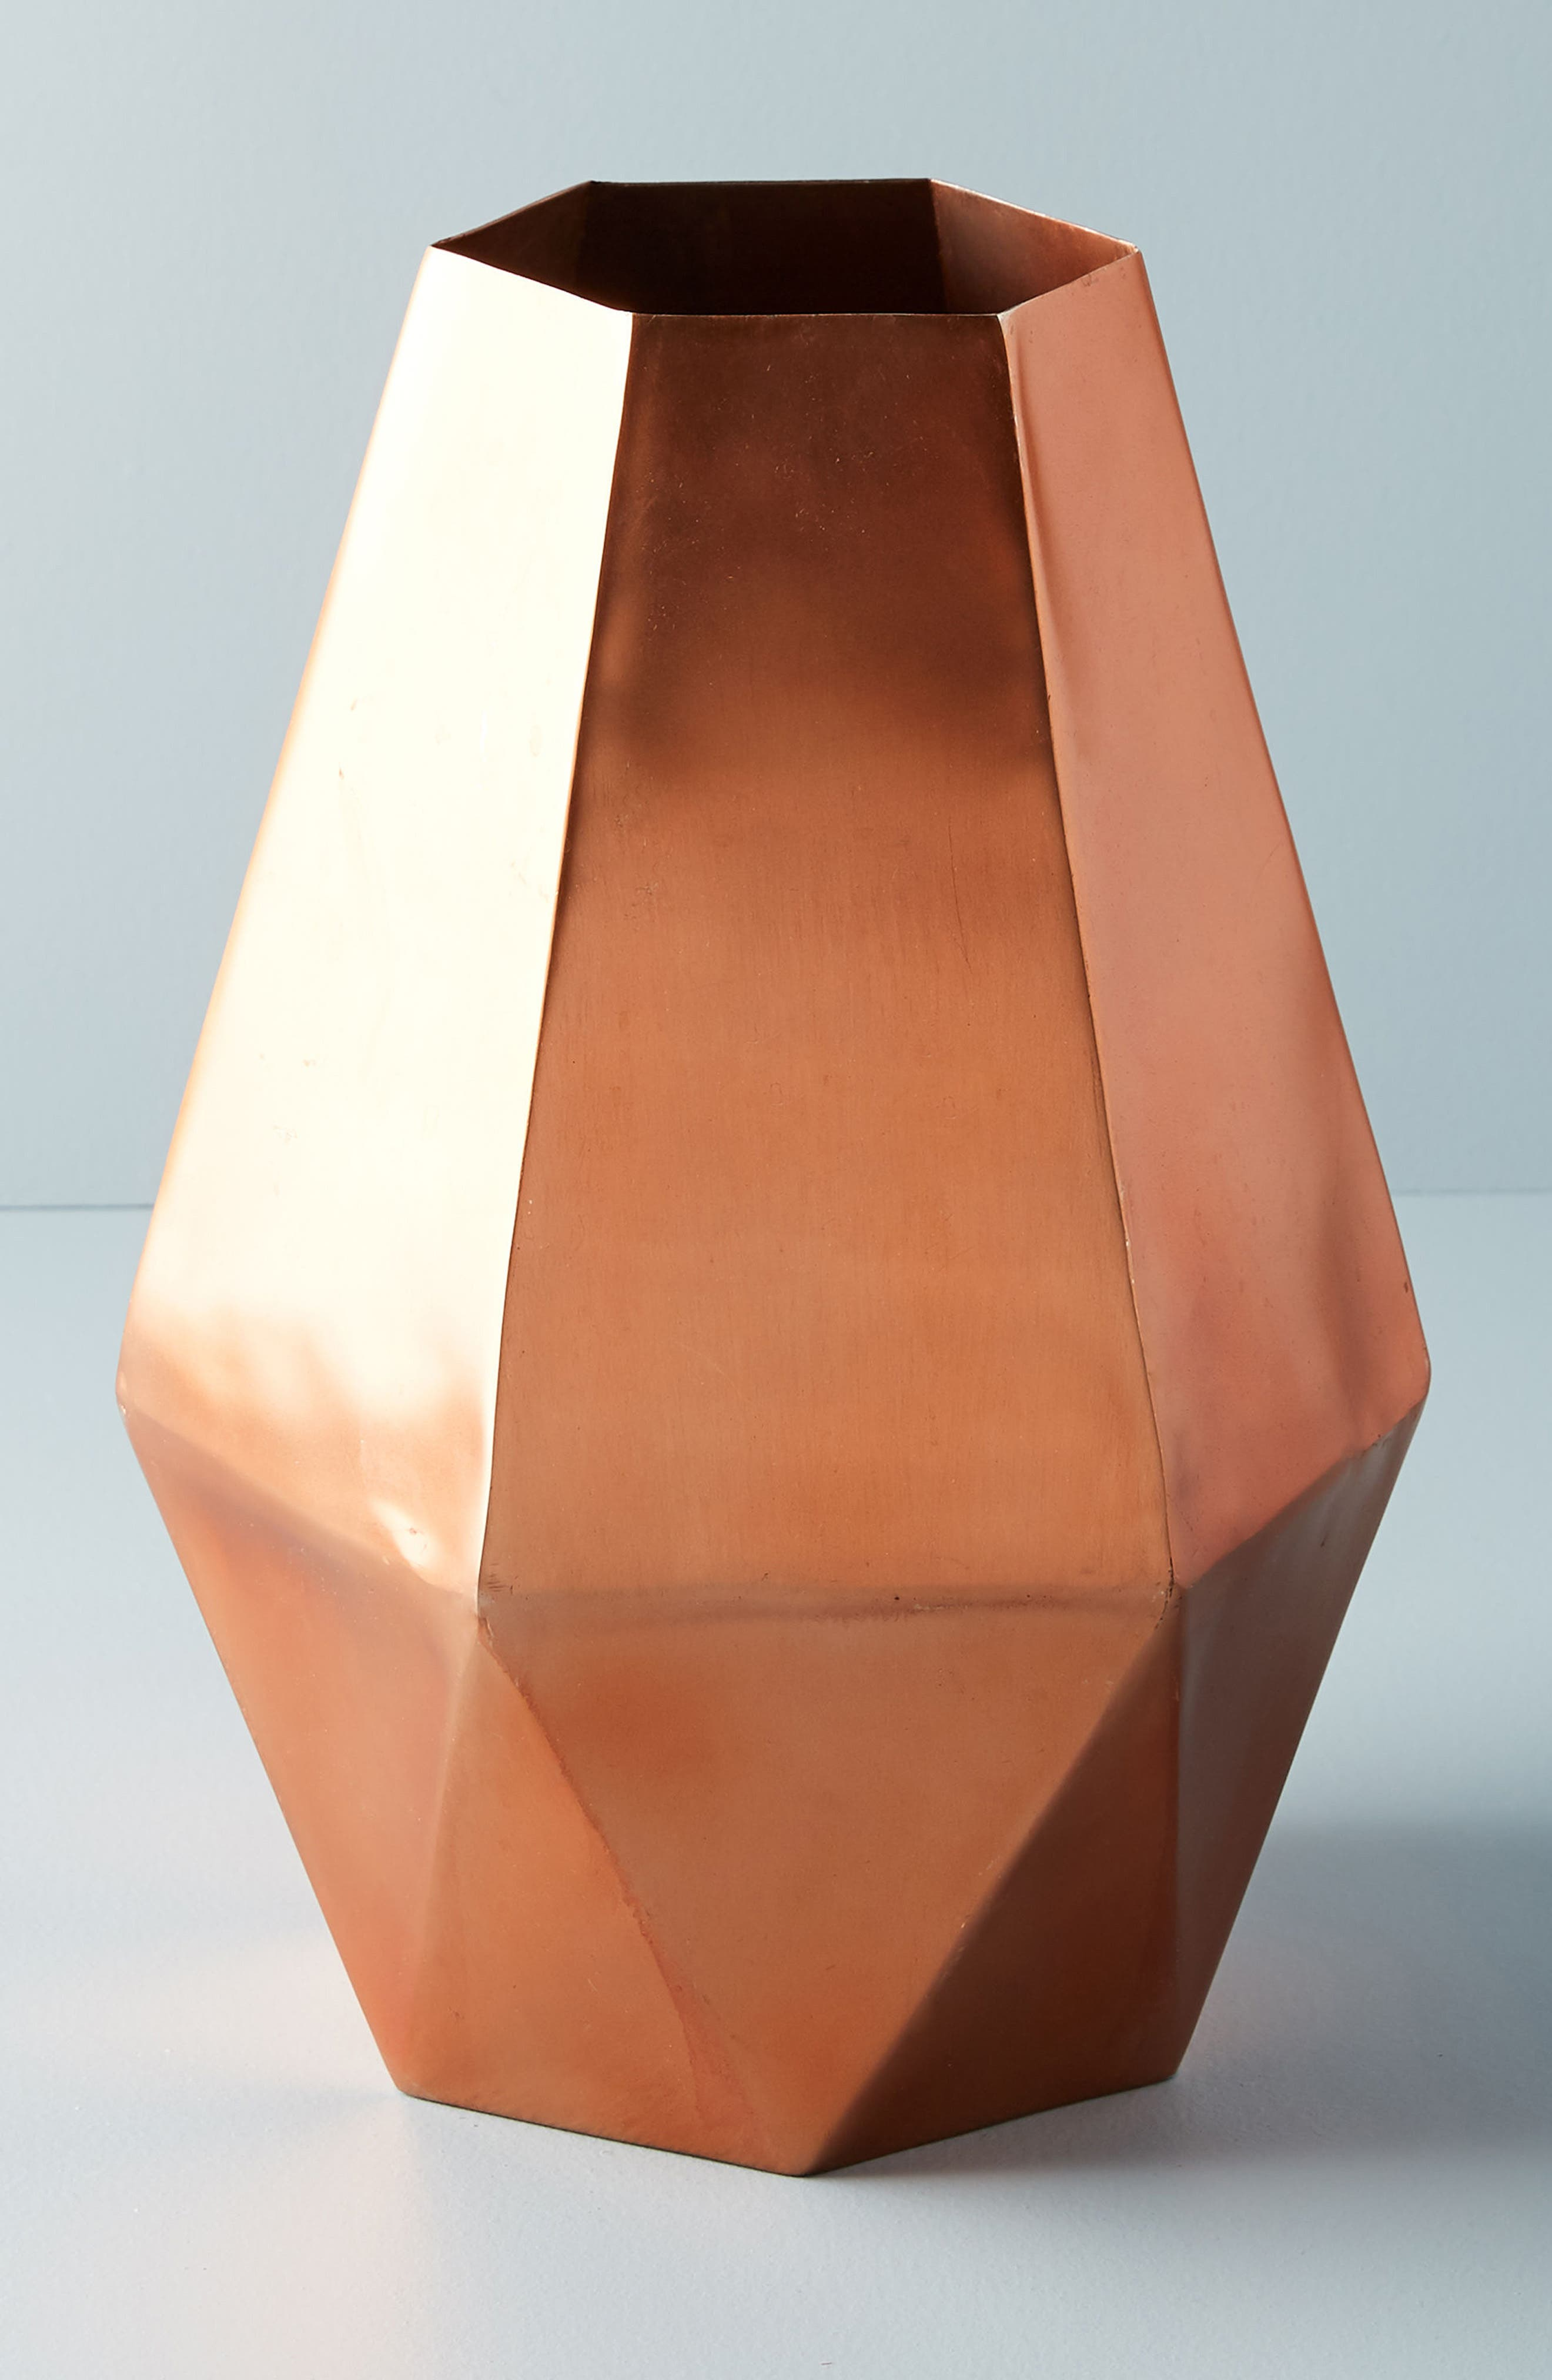 Faceted Hexagon Metal Vase,                         Main,                         color, 220